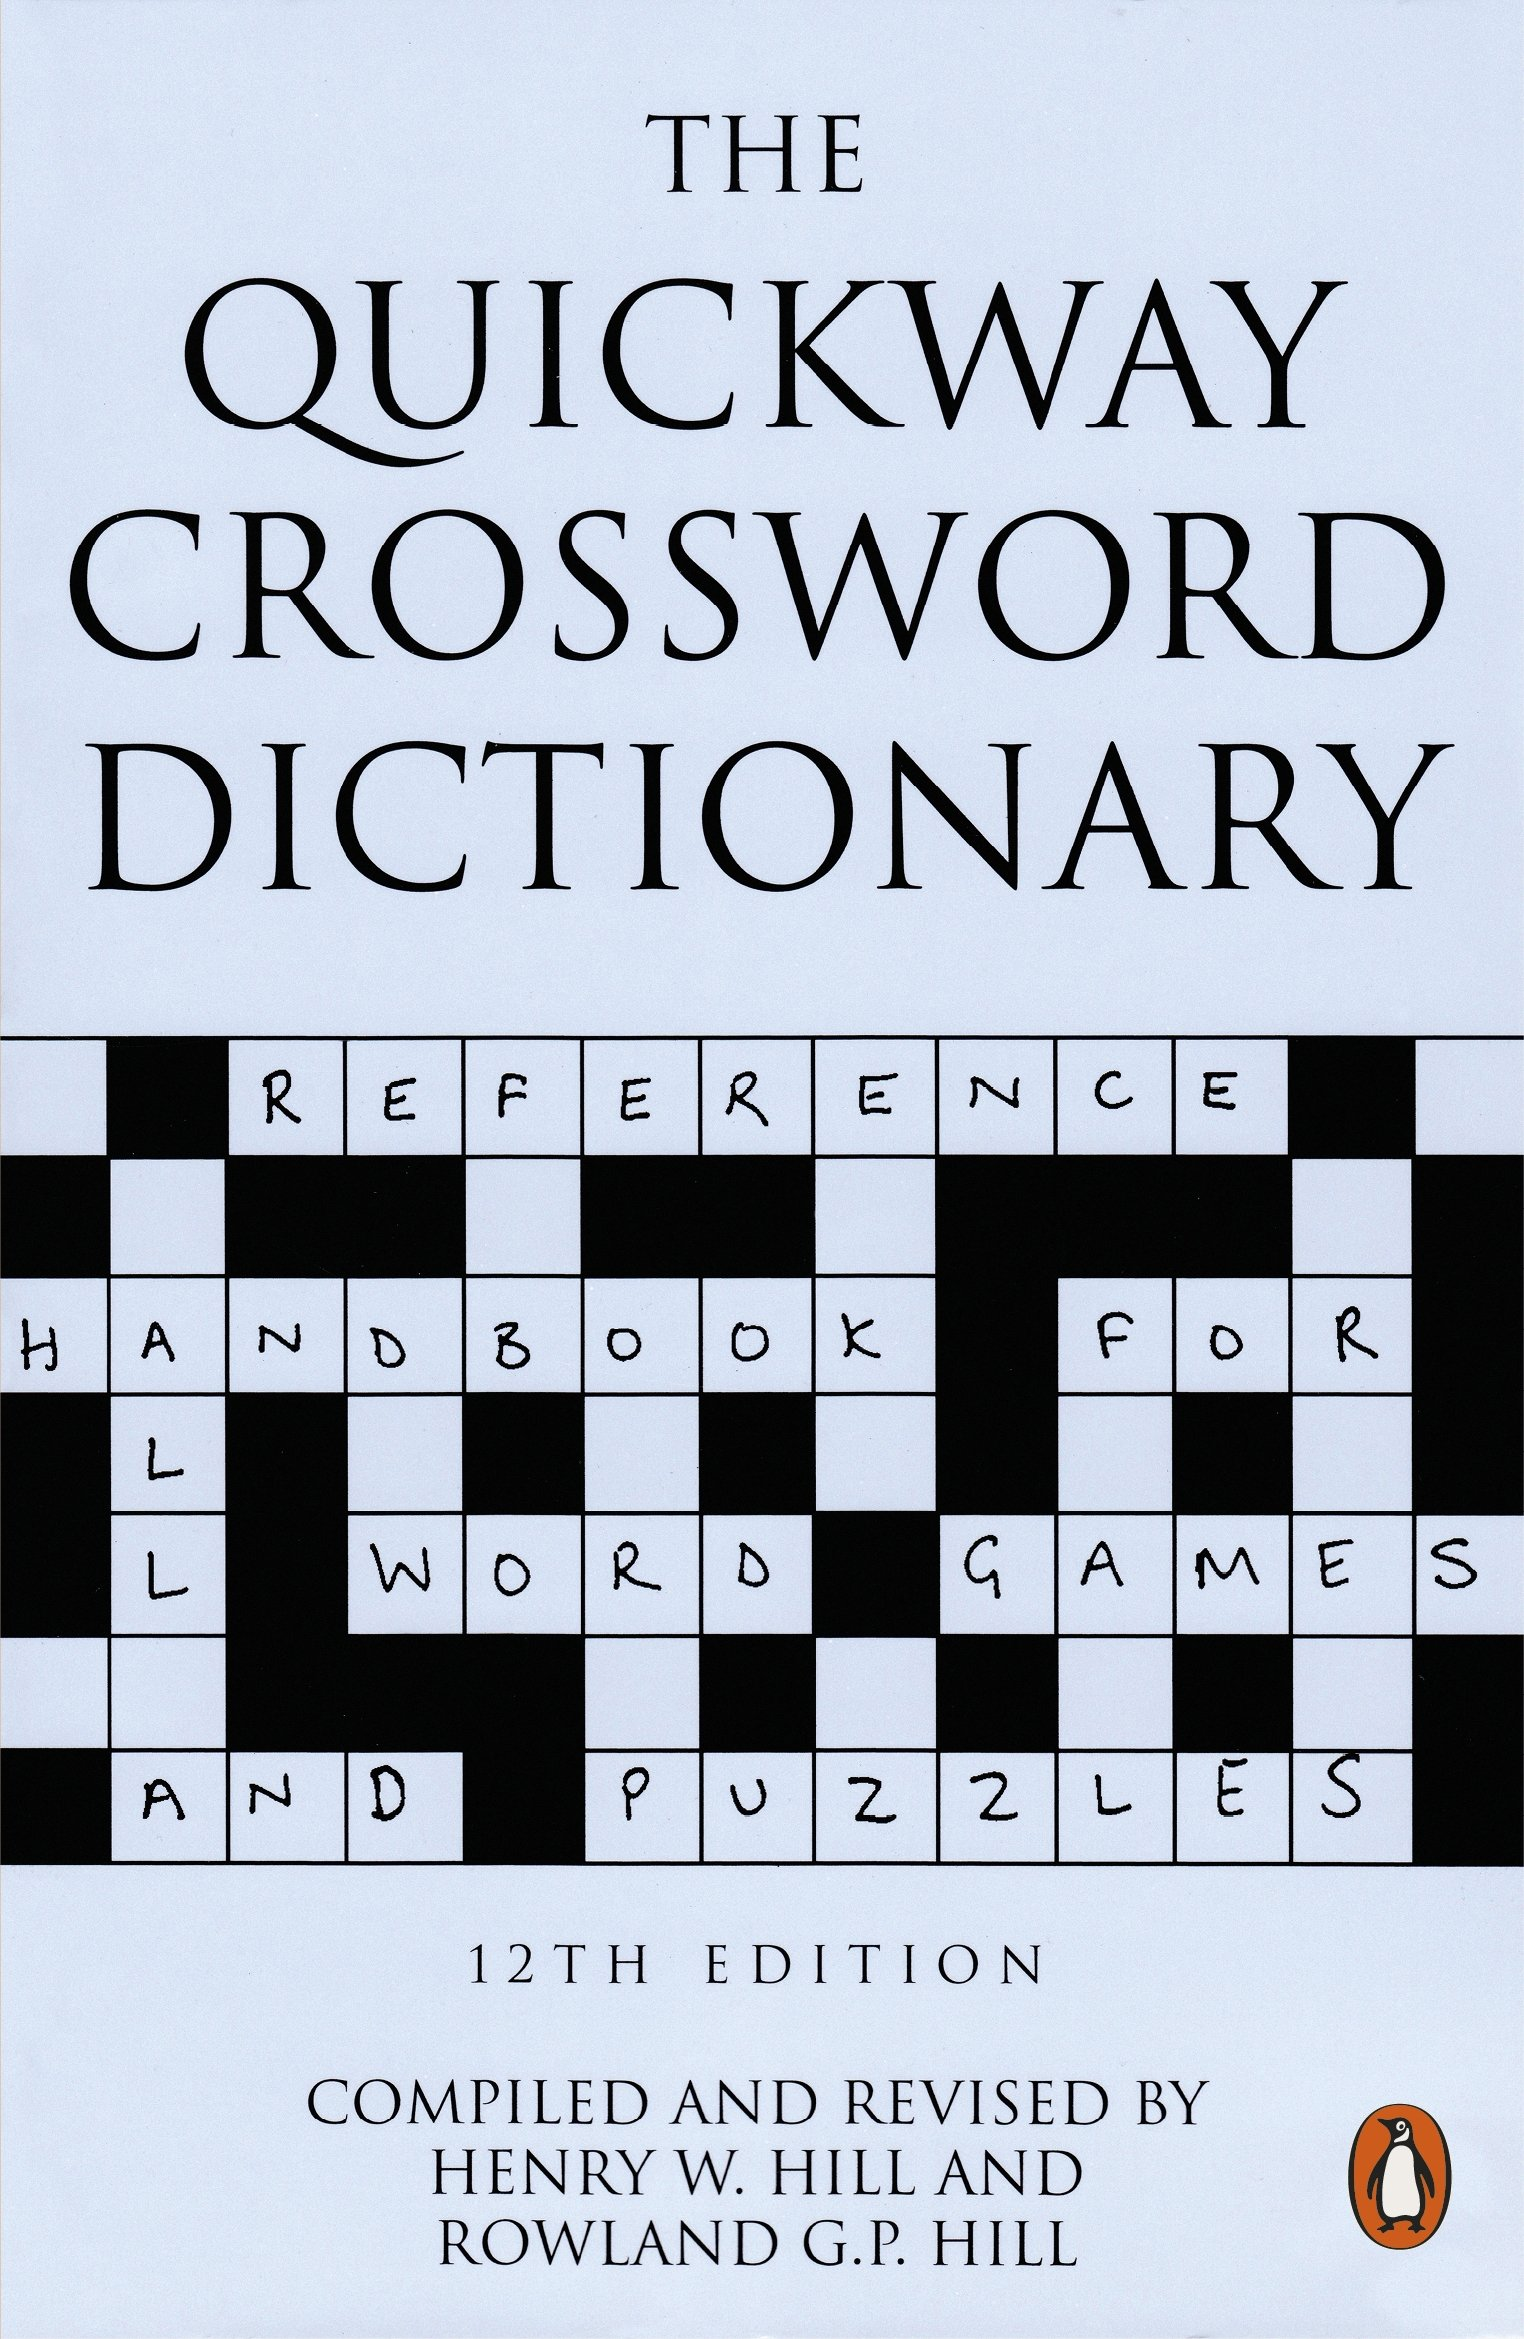 The Quickway Crossword Dictionary Hill, Henry W, Hill, Roland G ...